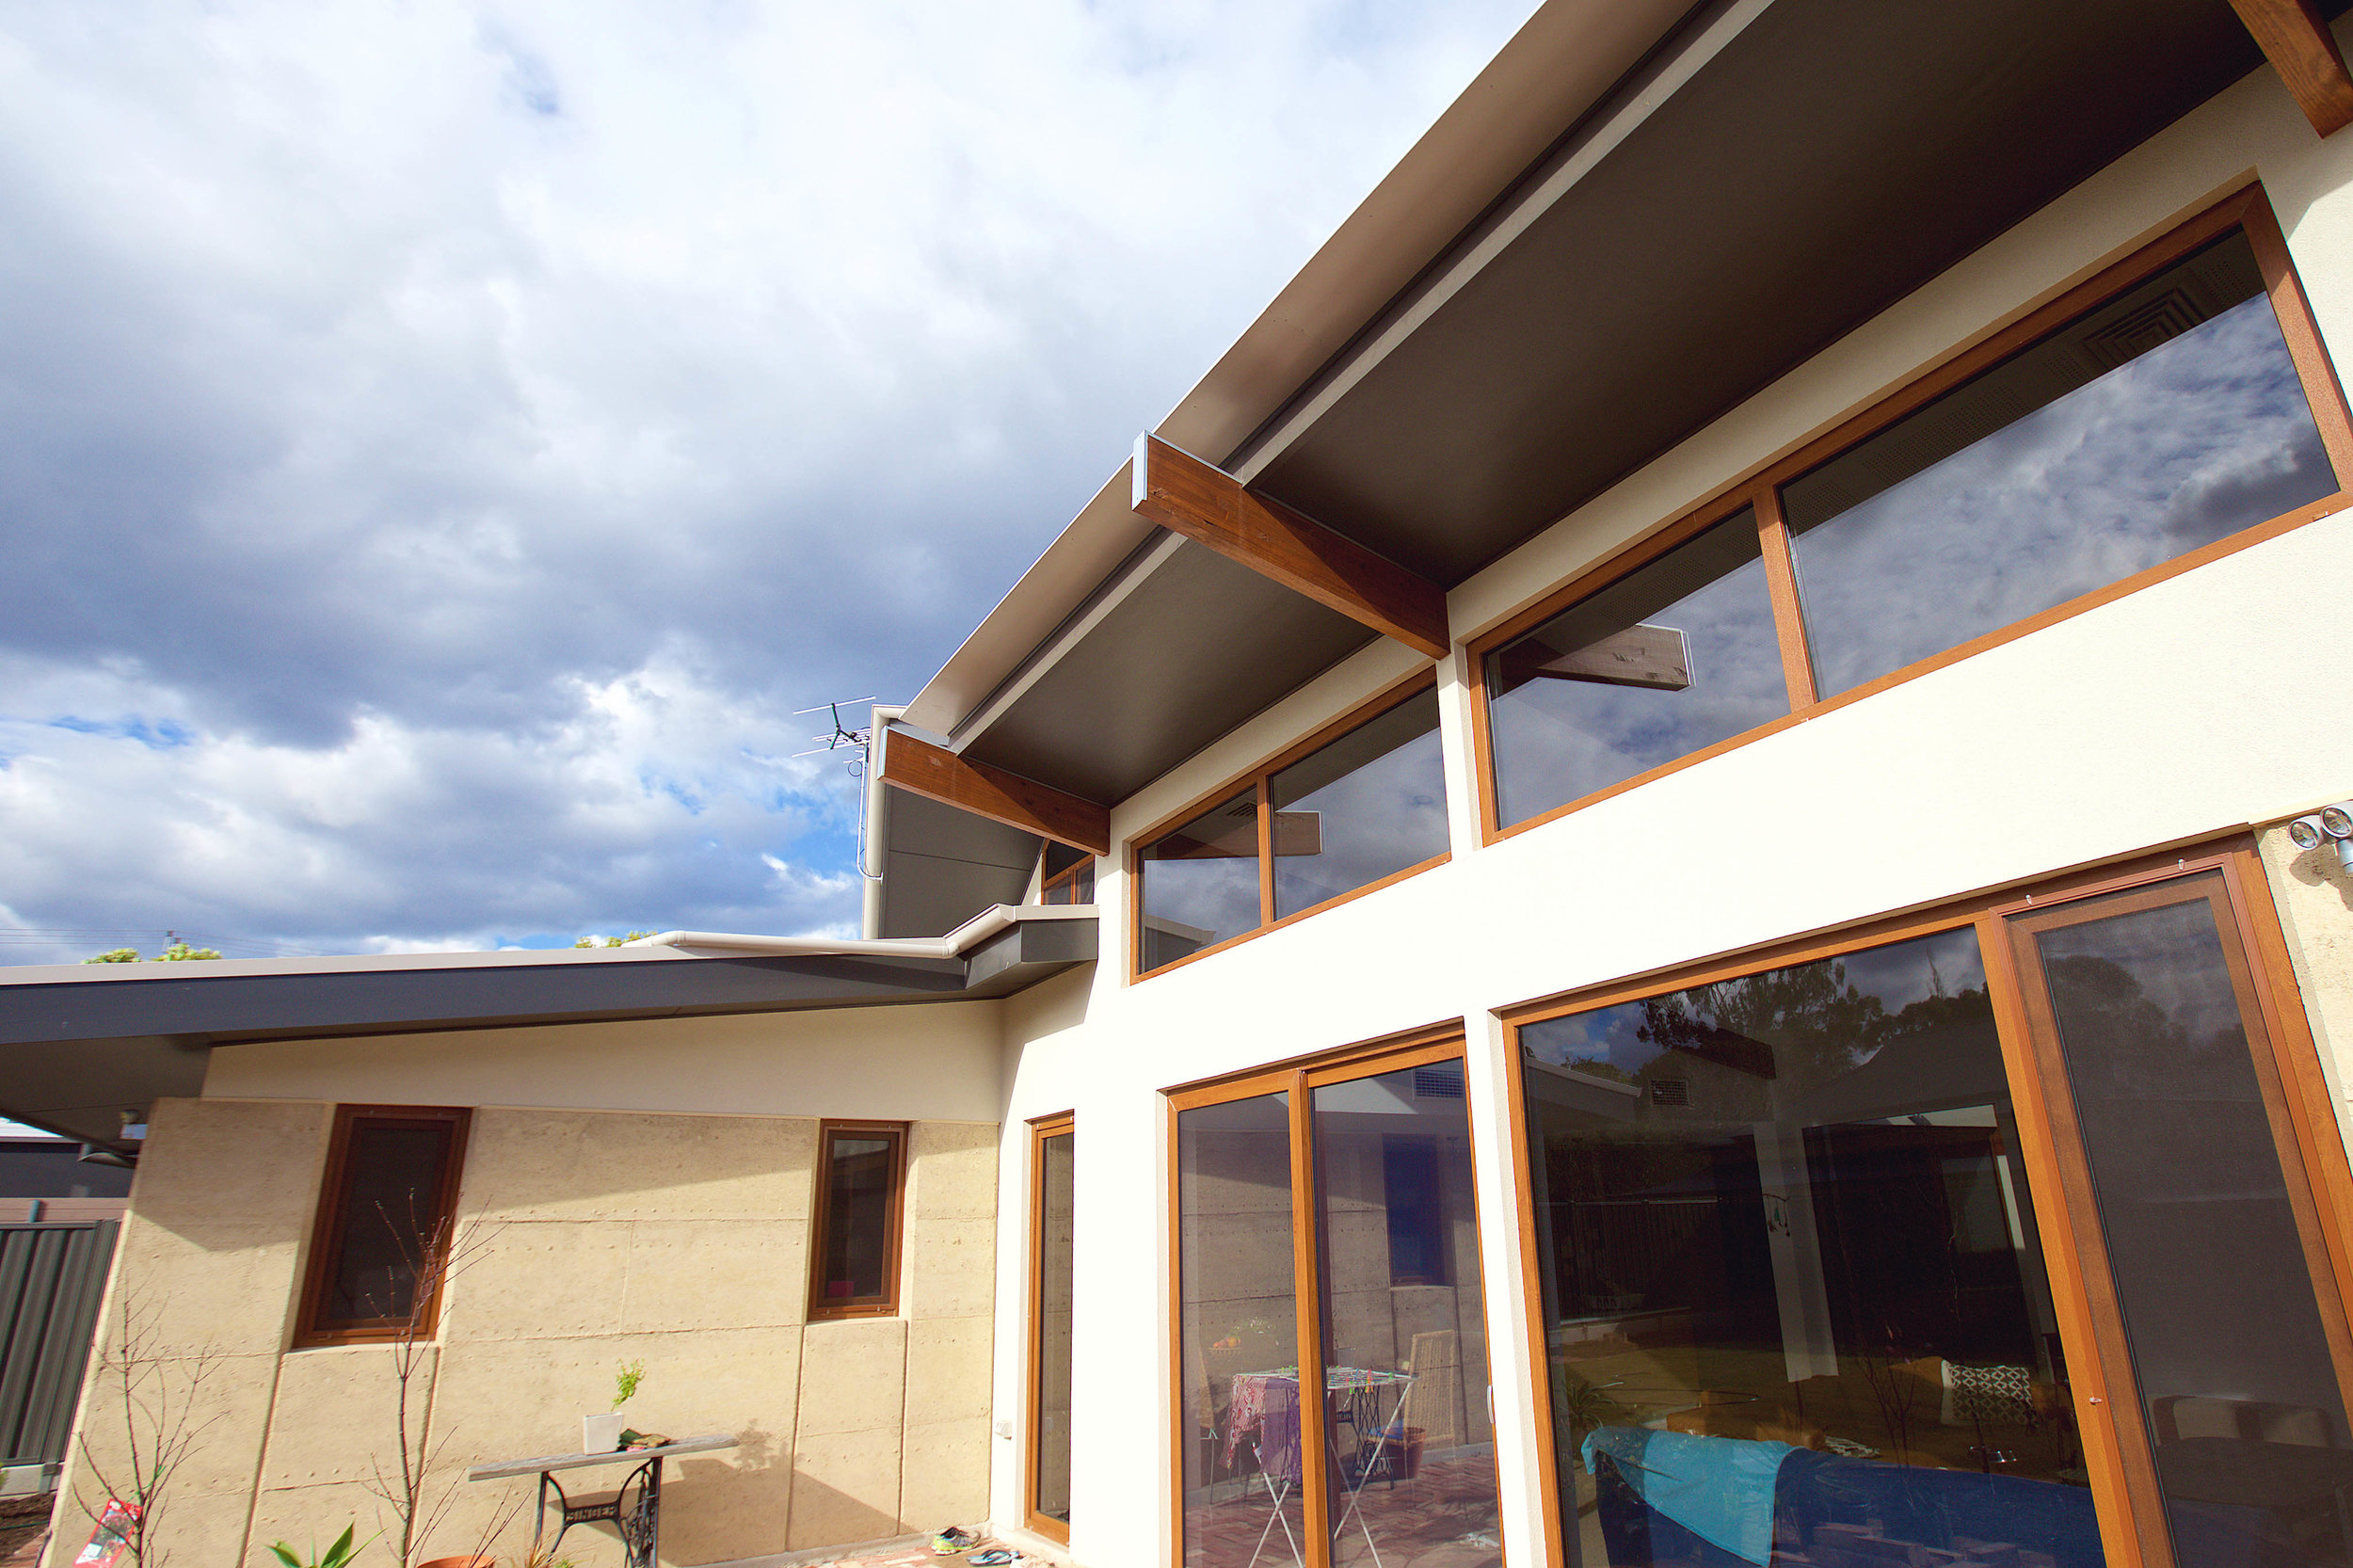 Leabrook 5 ext rear rammed earthwall + extended eaves06.jpg